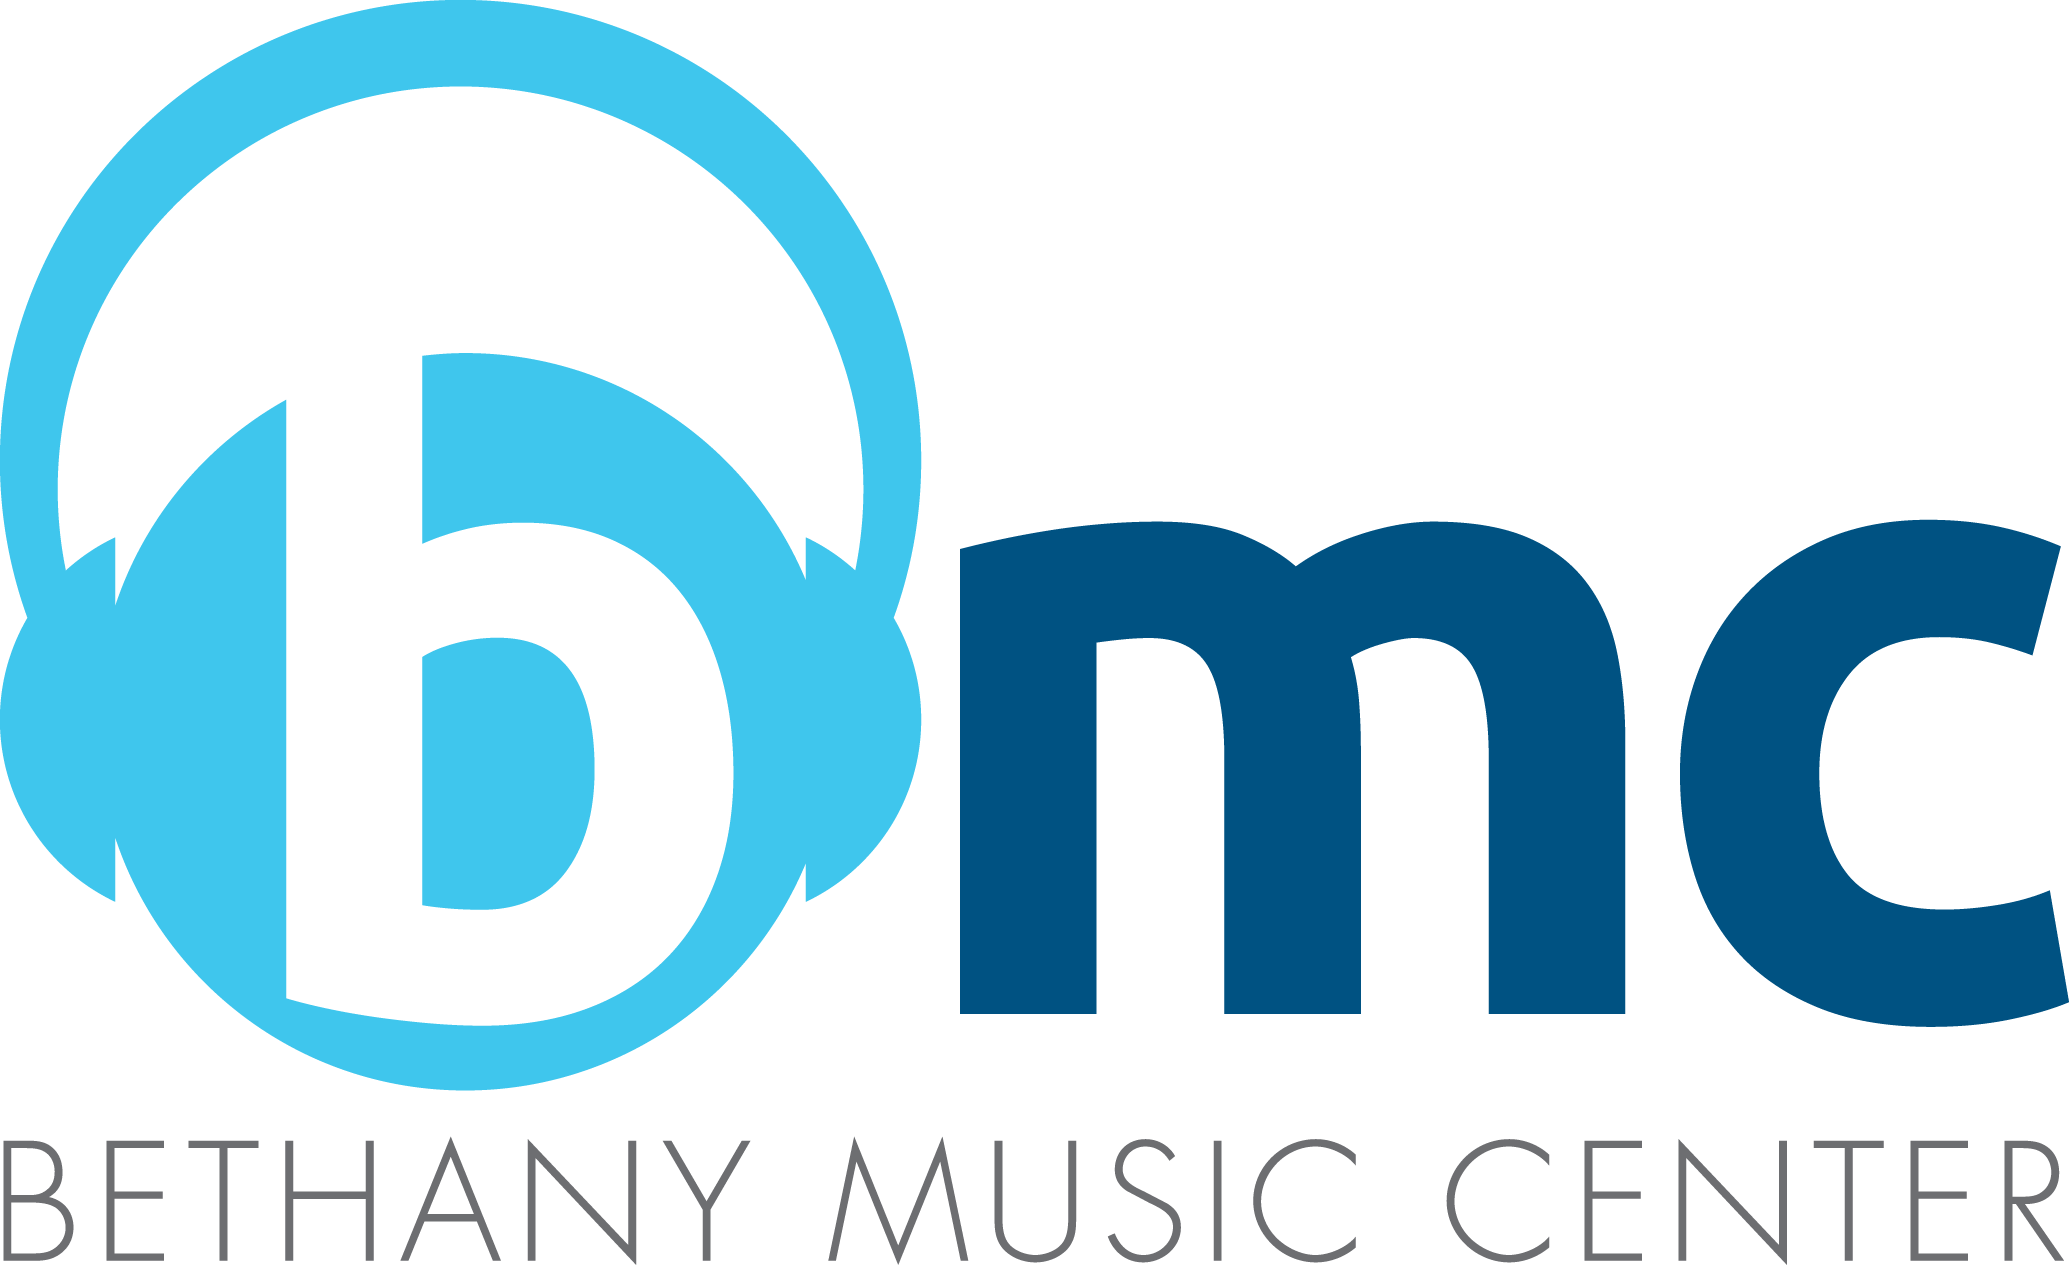 Bethany Music Center